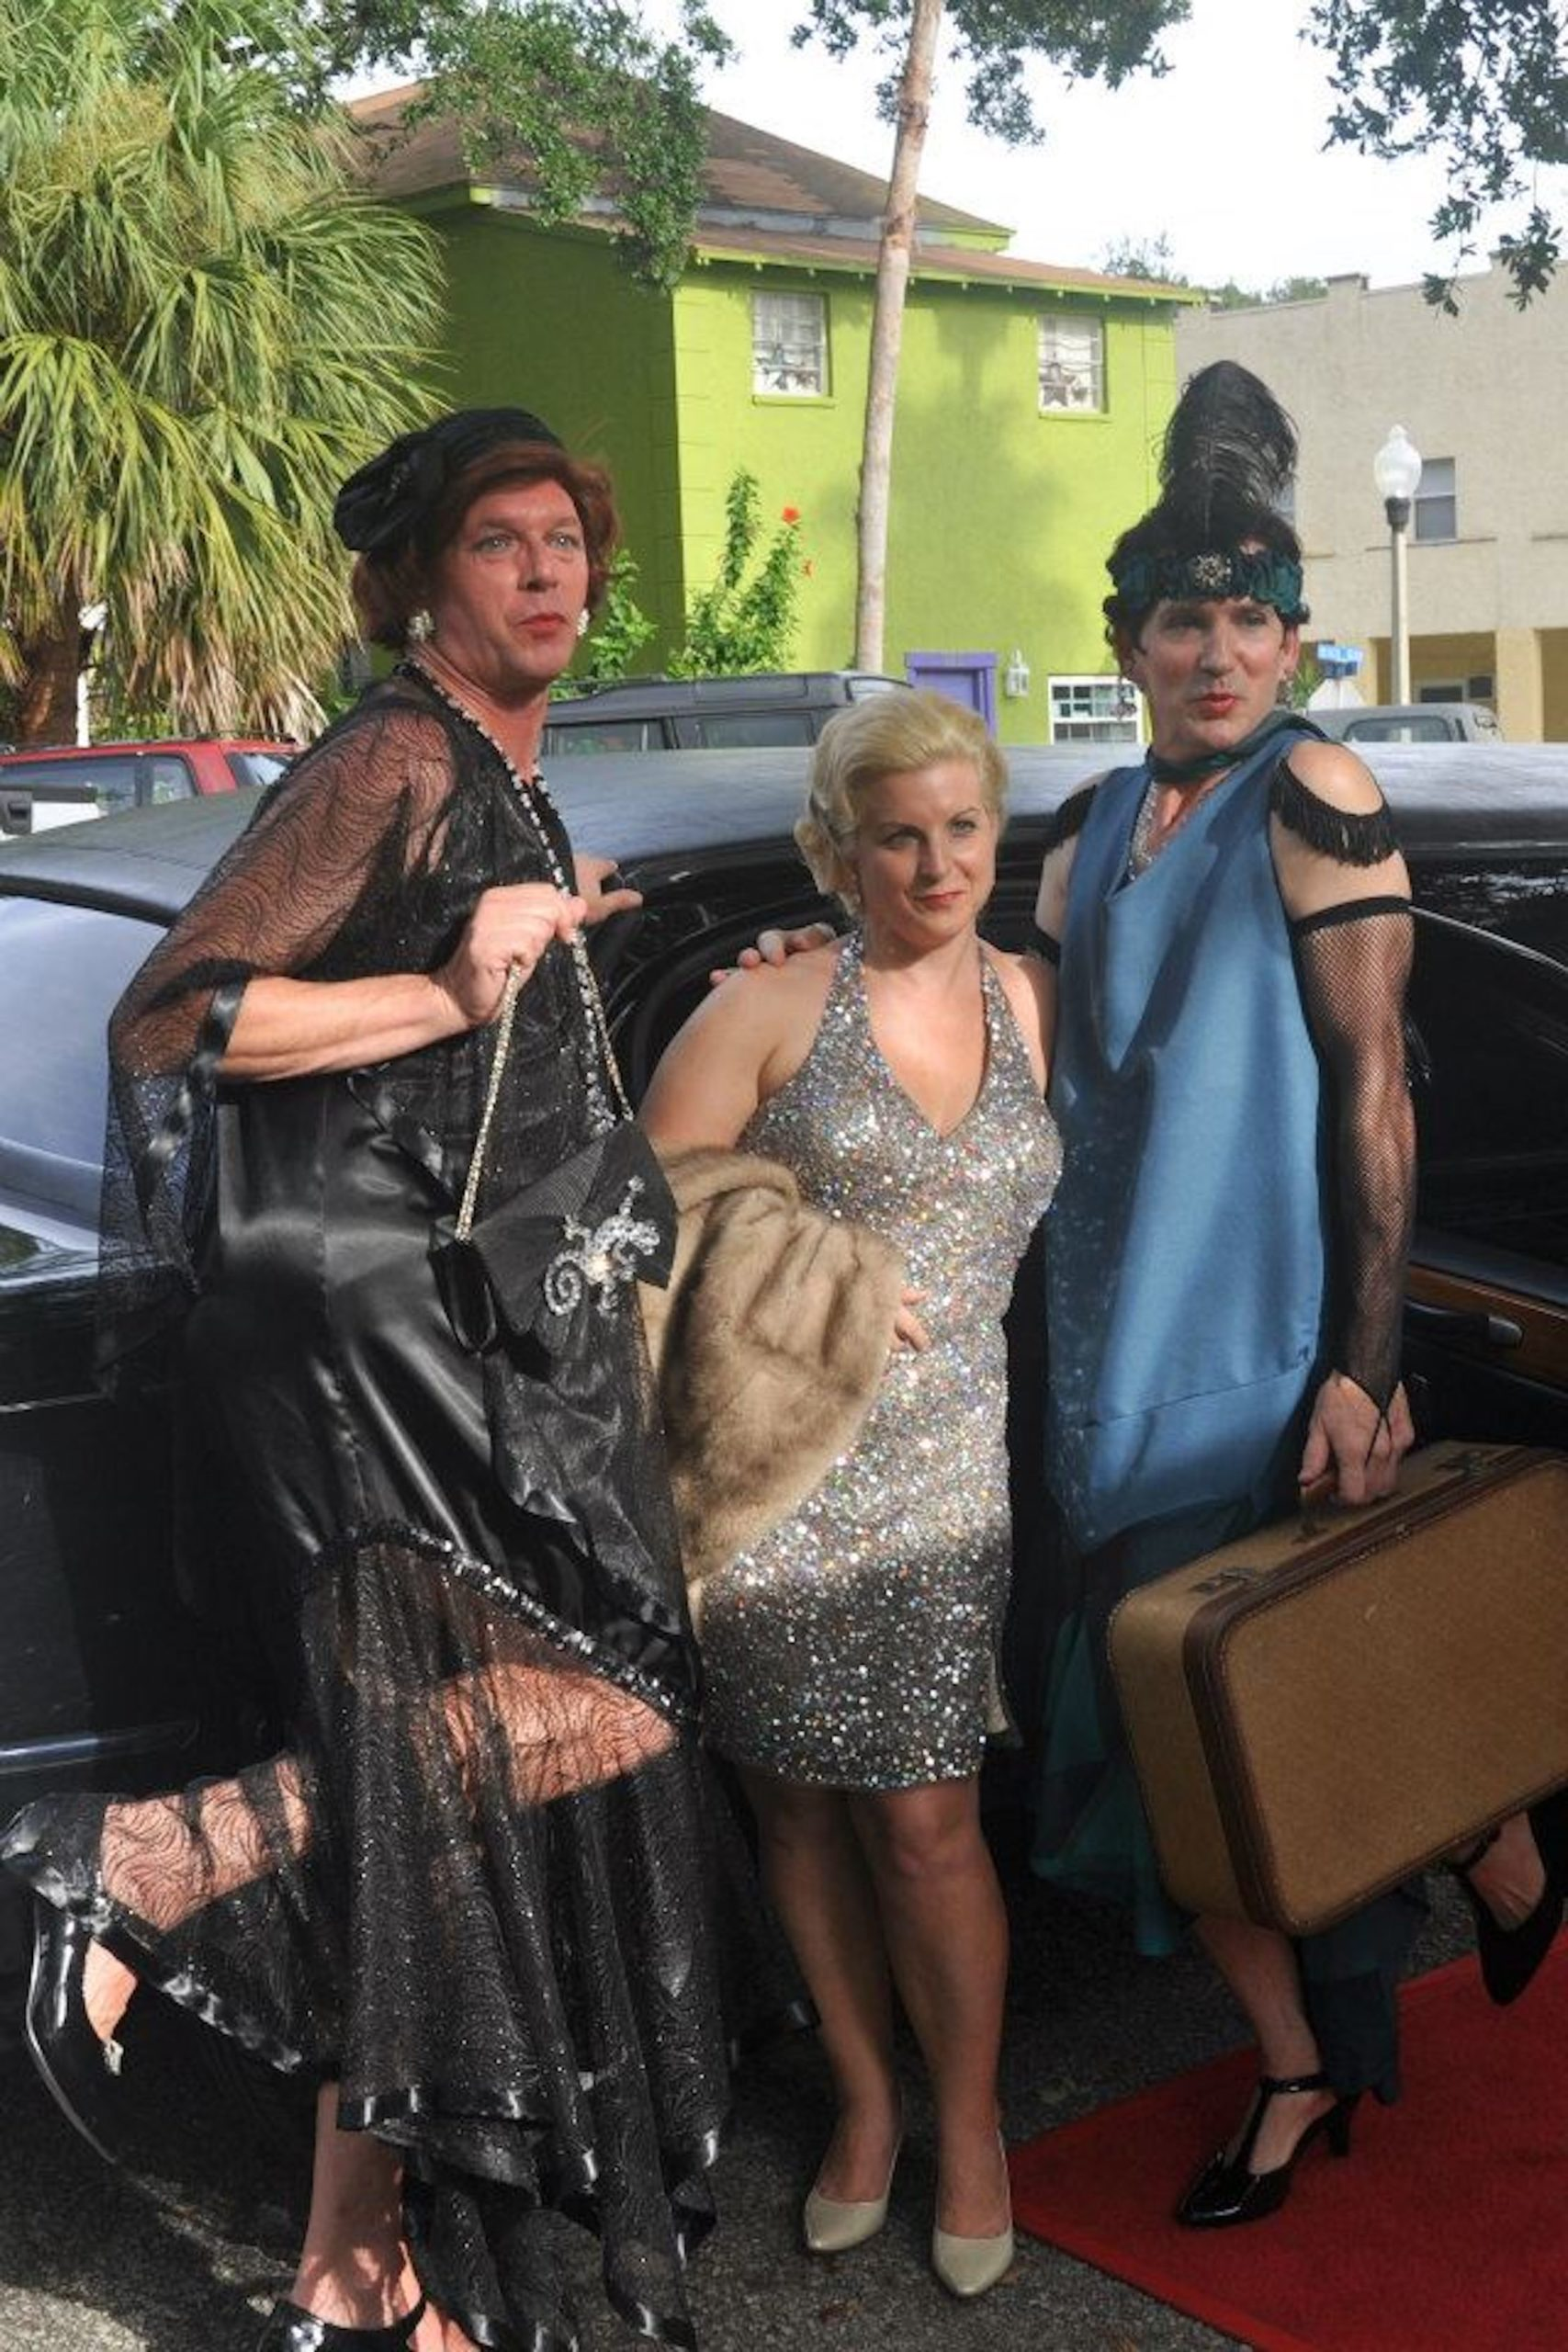 Three people pose in 1920s Flapper costumes in front of a black car.